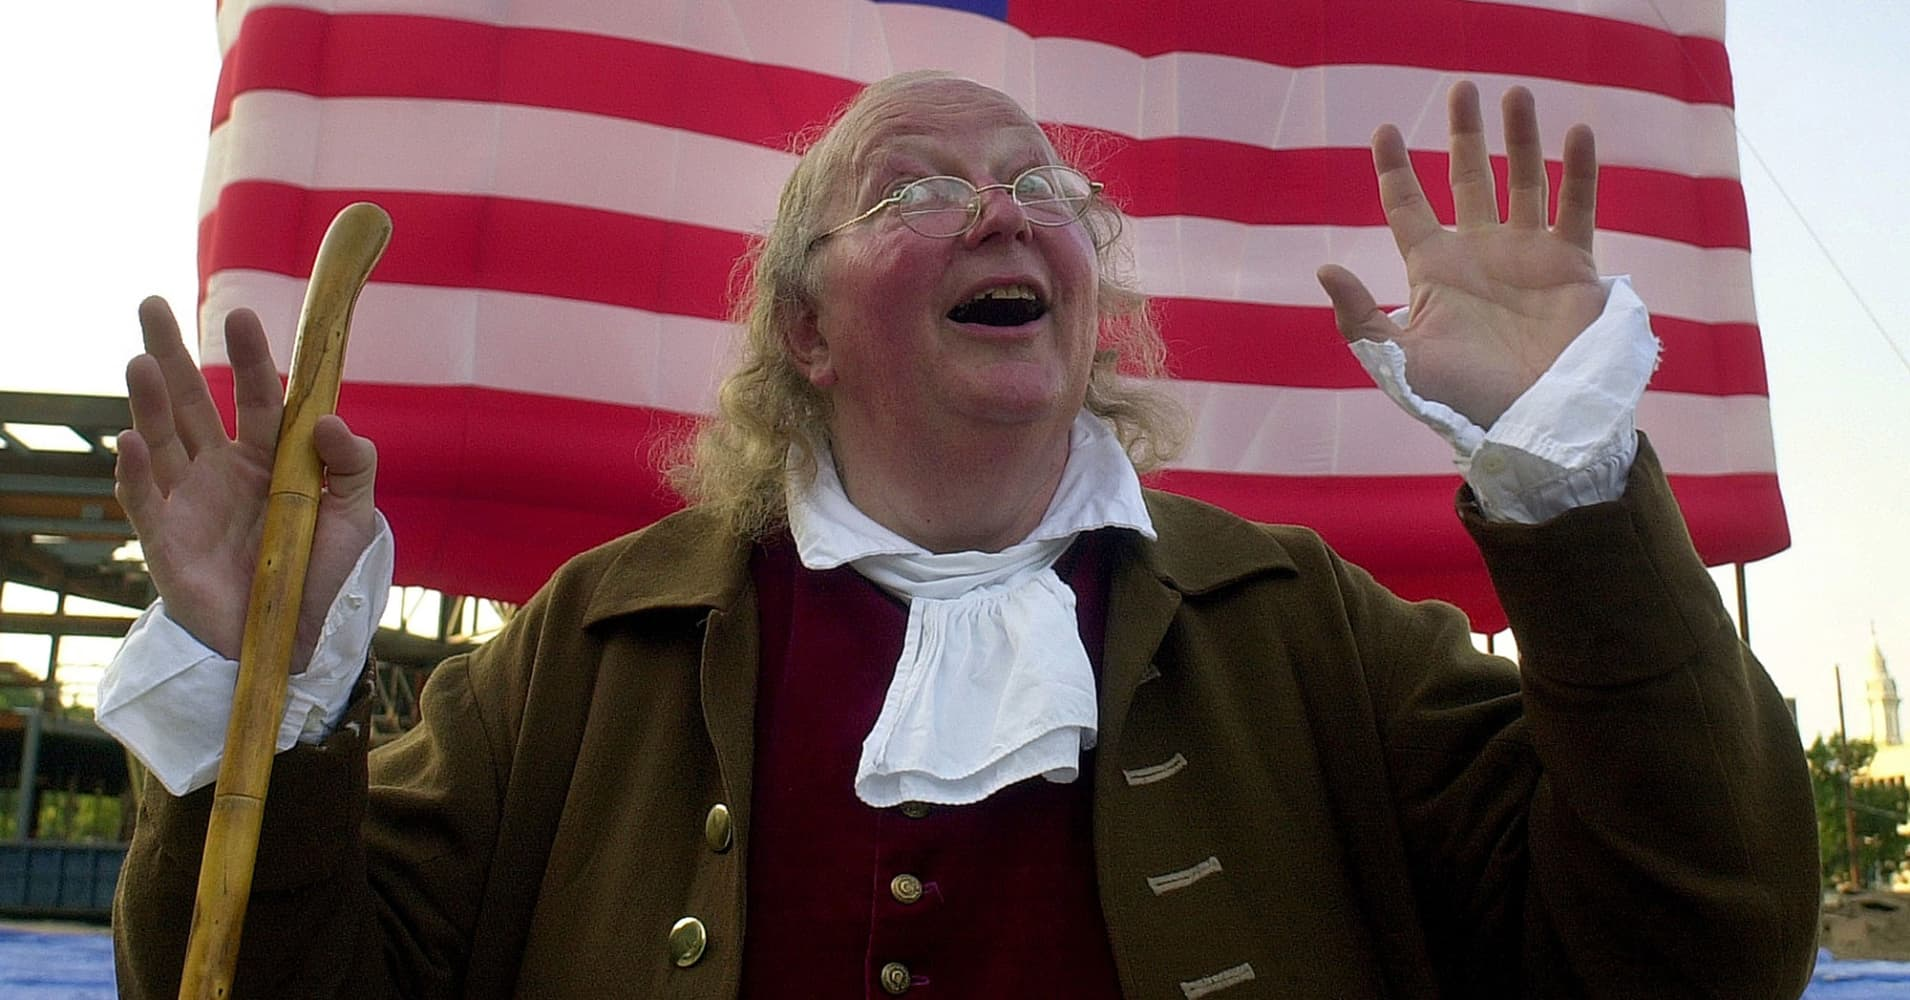 Actor Ralph Archibald, portraying Ben Franklin, reacts during the start of the one year countdown of the grand opening of the National Constitution Center (NCC) July 3, 2002, in Philadelphia, Pennsylvania.